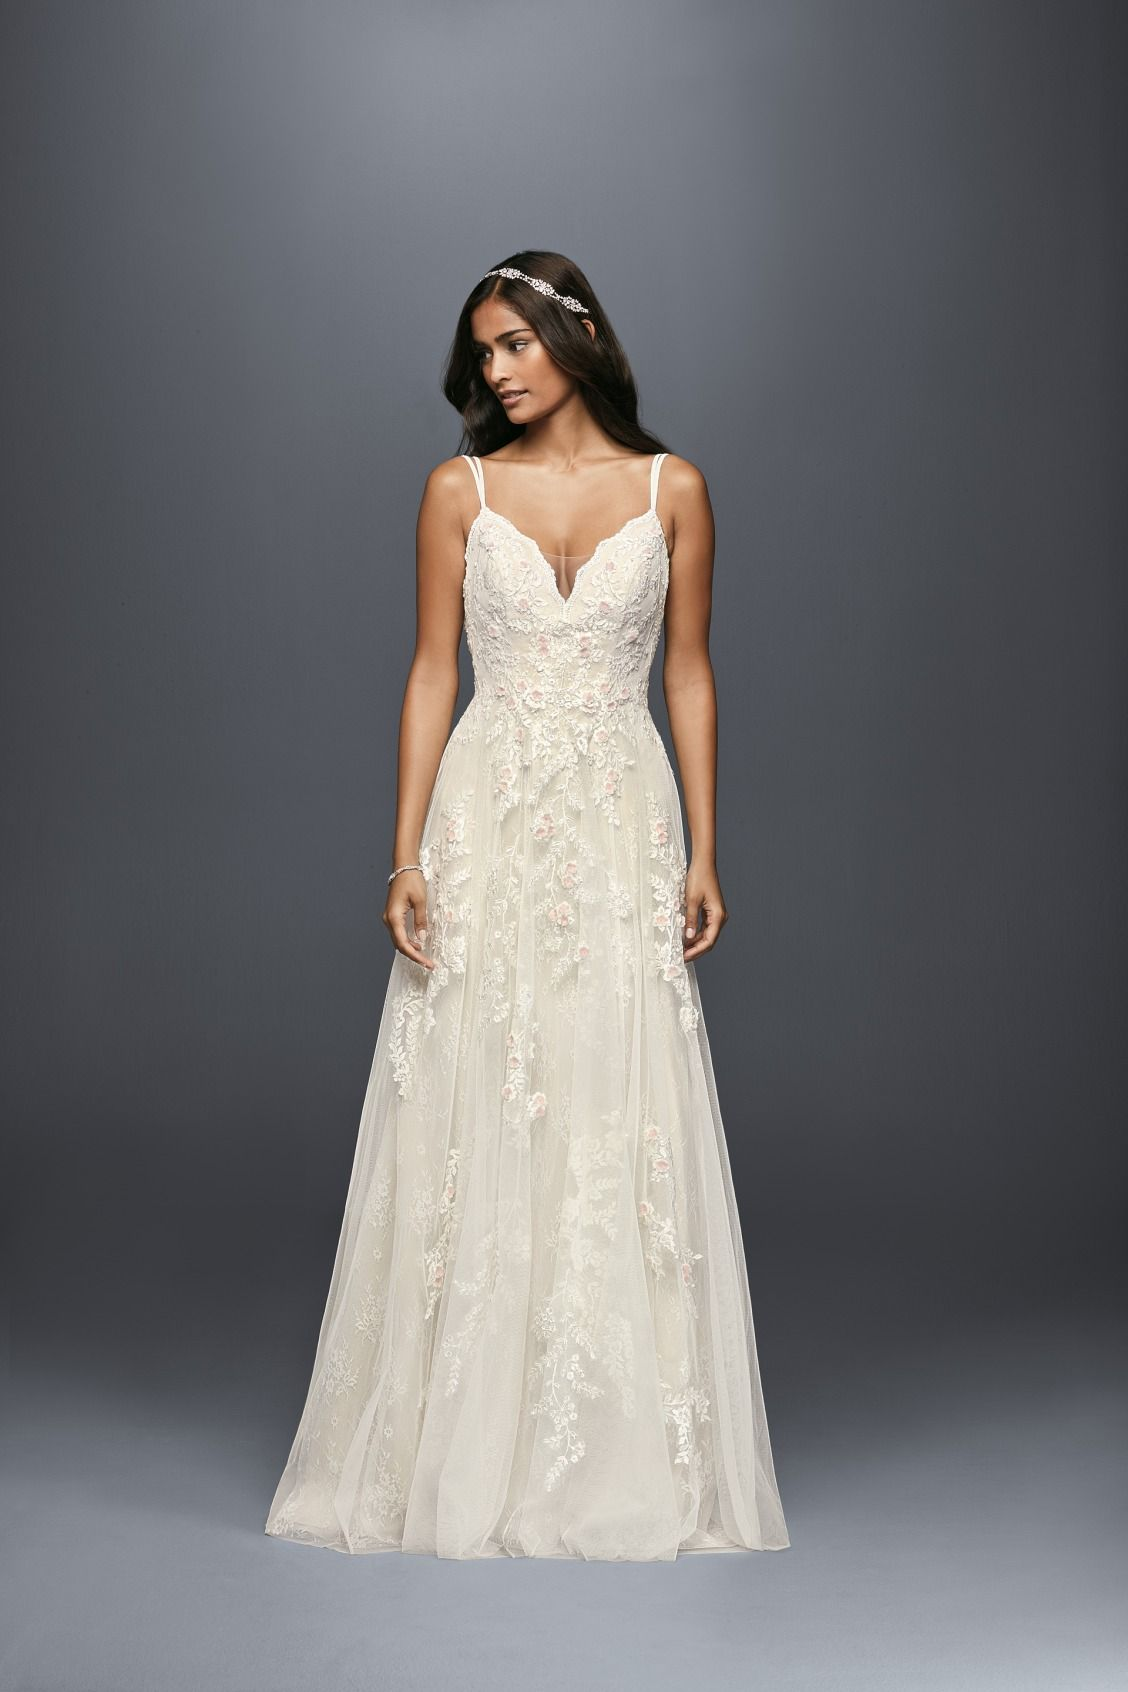 Scalloped A Line Wedding Dress With Double Straps David S Bridal Sweet Wedding Dresses A Line Wedding Dress Aline Wedding Dress [ 1692 x 1128 Pixel ]